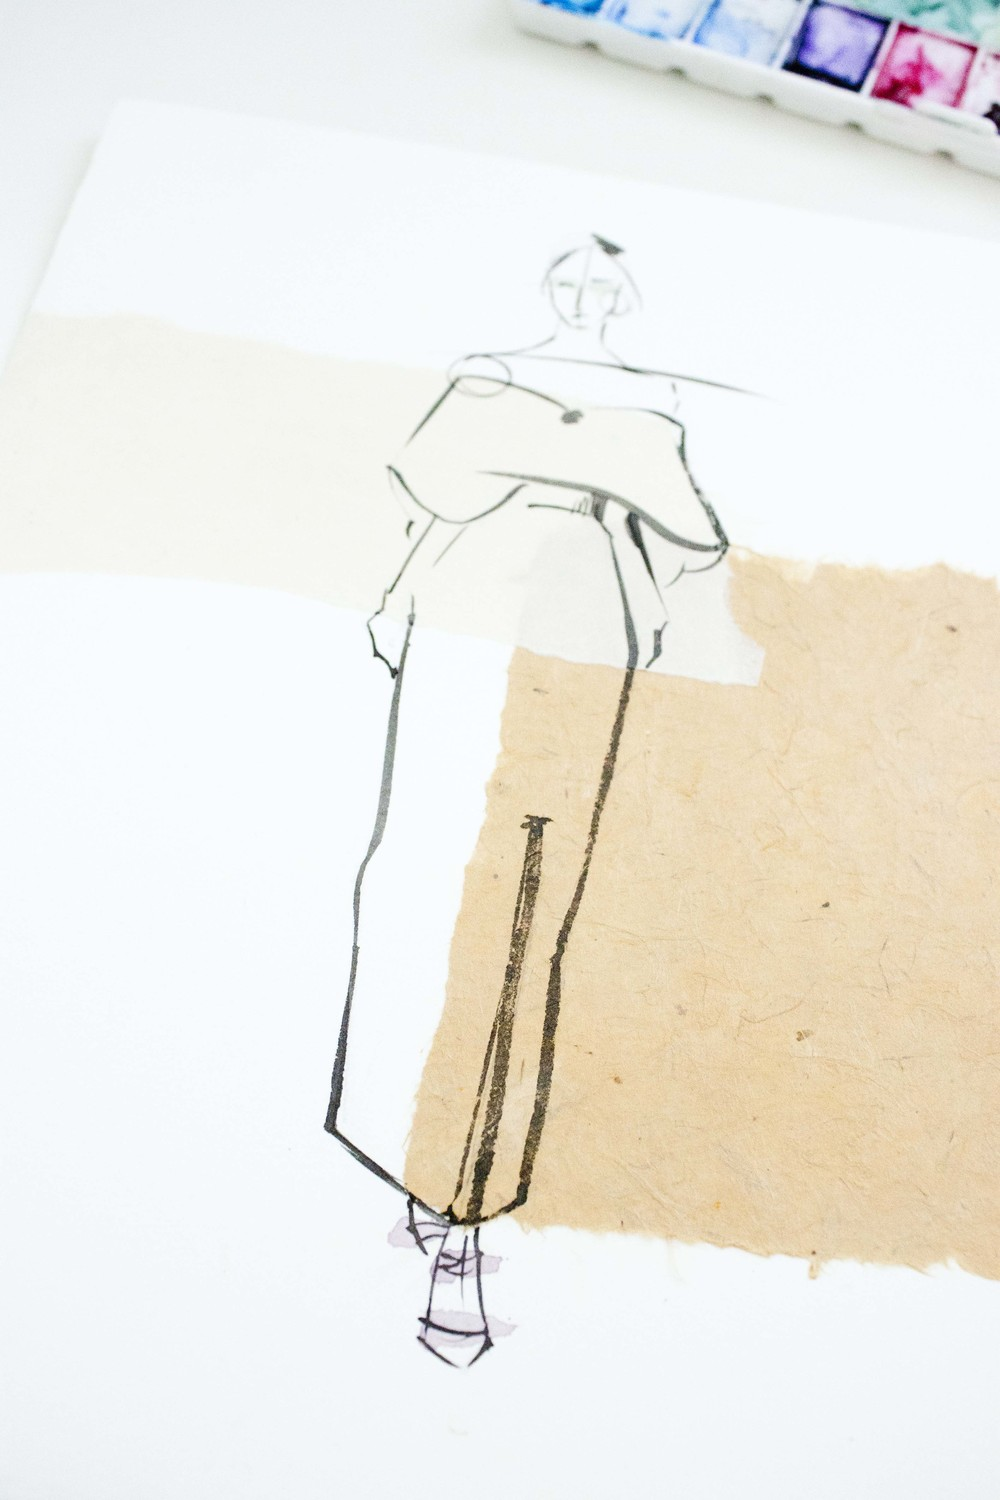 Delpozo Spring 2014 Illustrated by Victoria-Riza